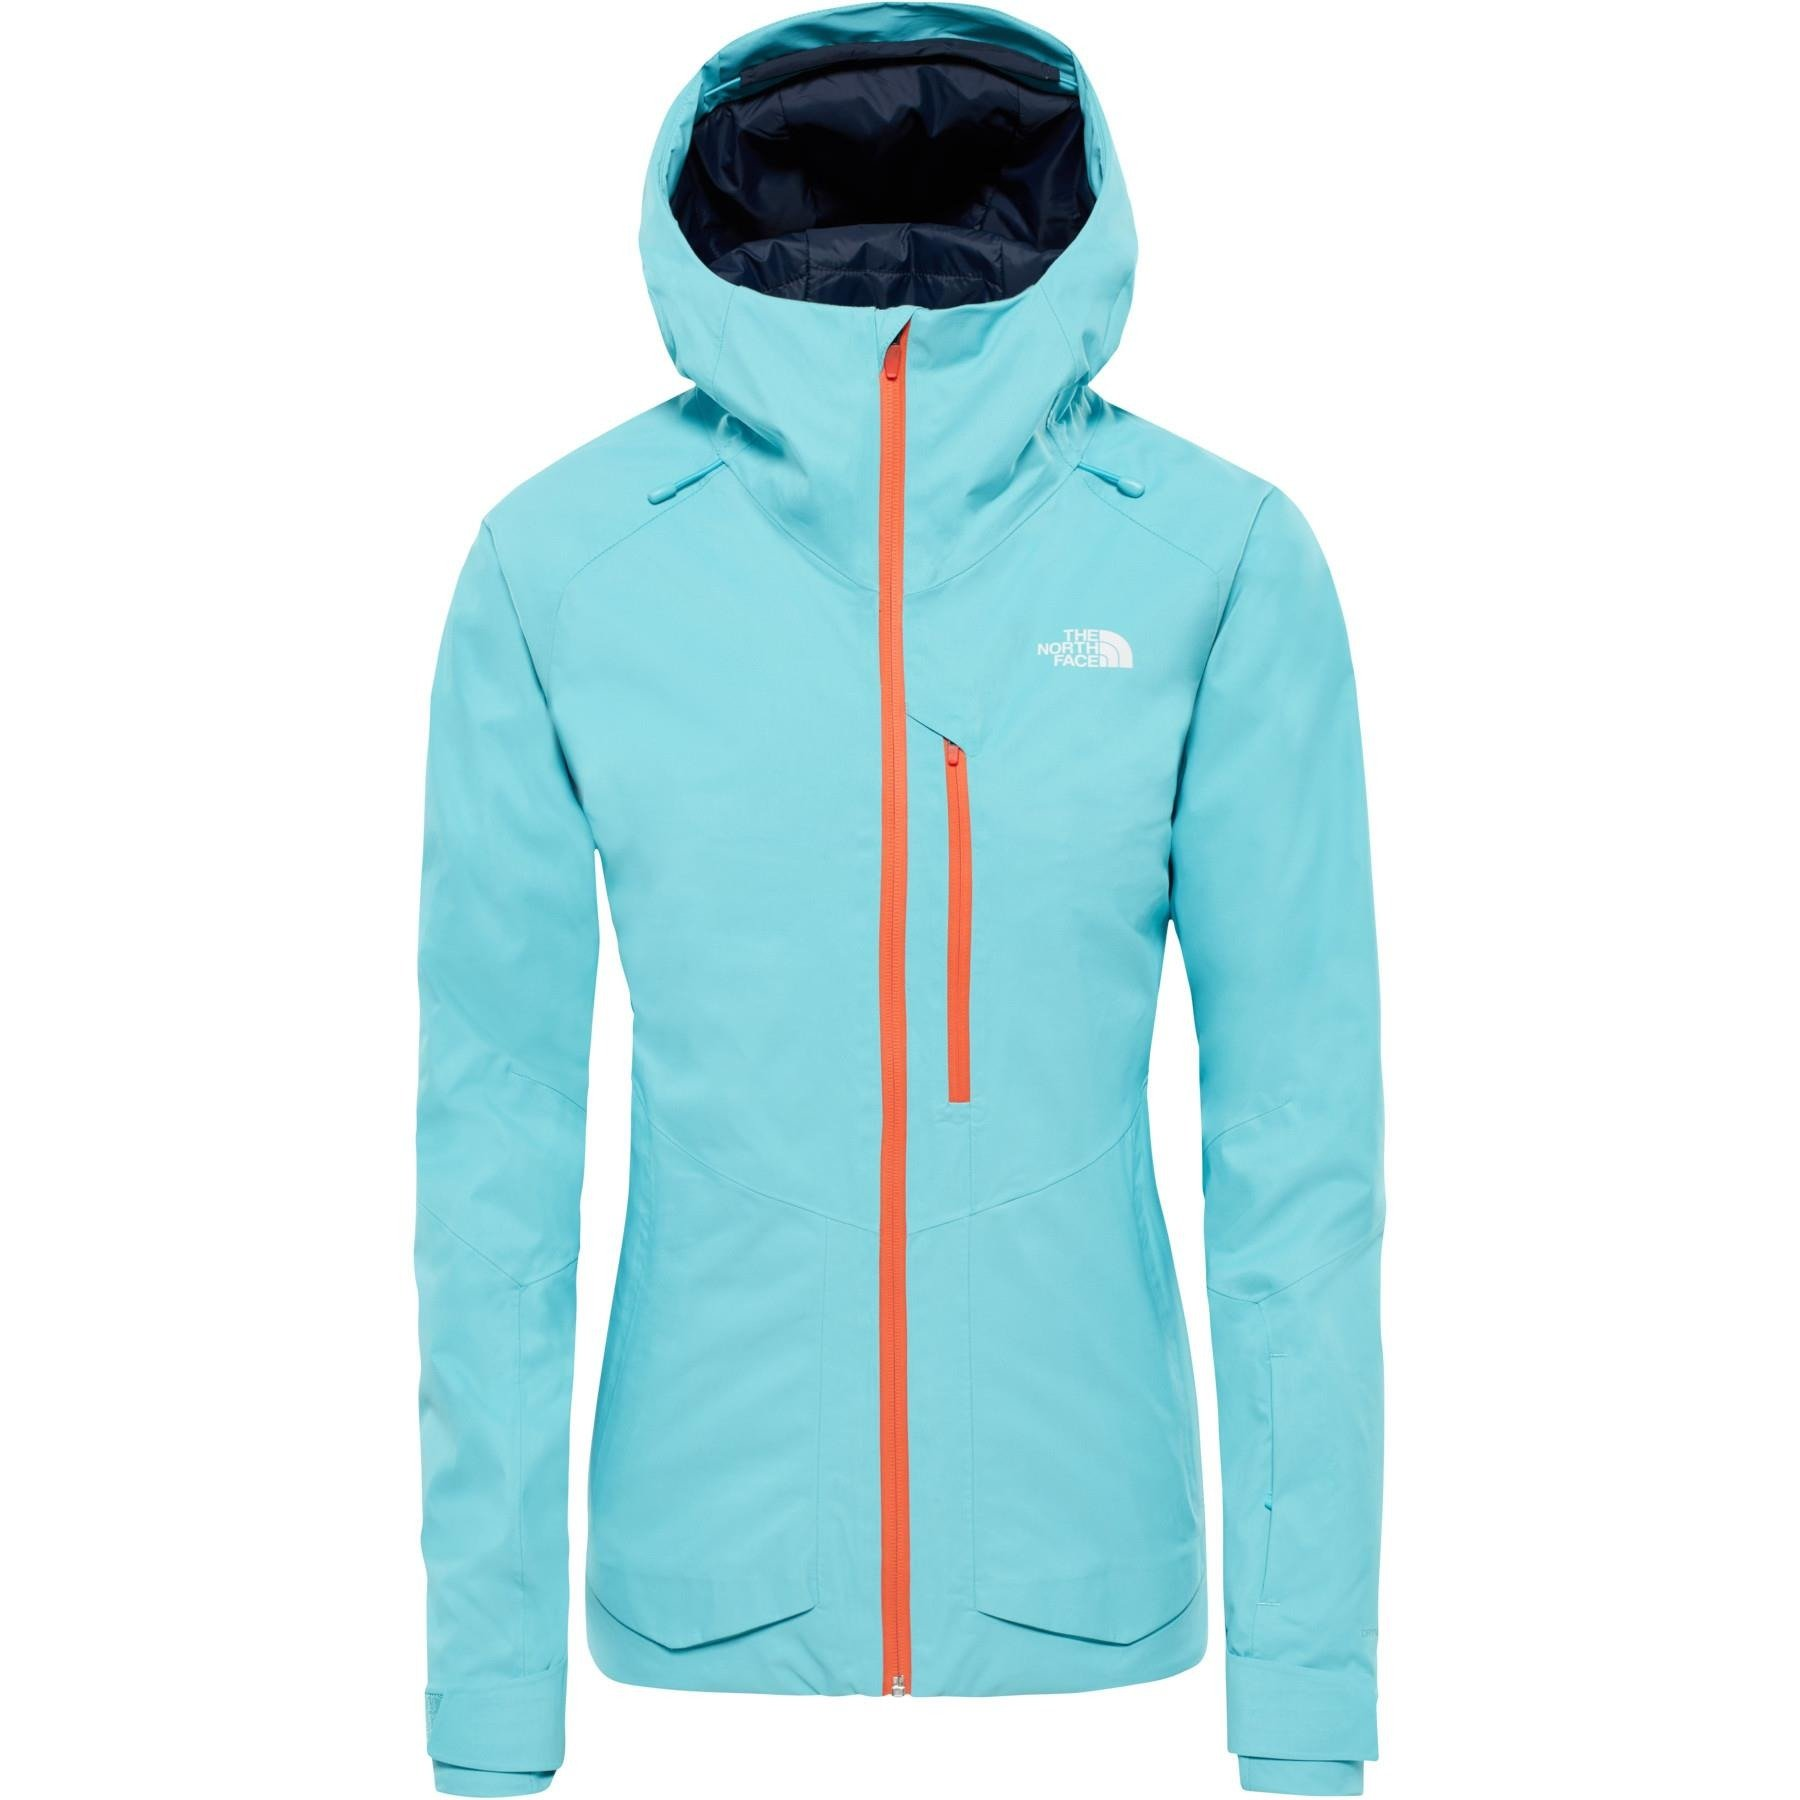 Kurtka narciarska The North Face Sickline T93LUH3XT